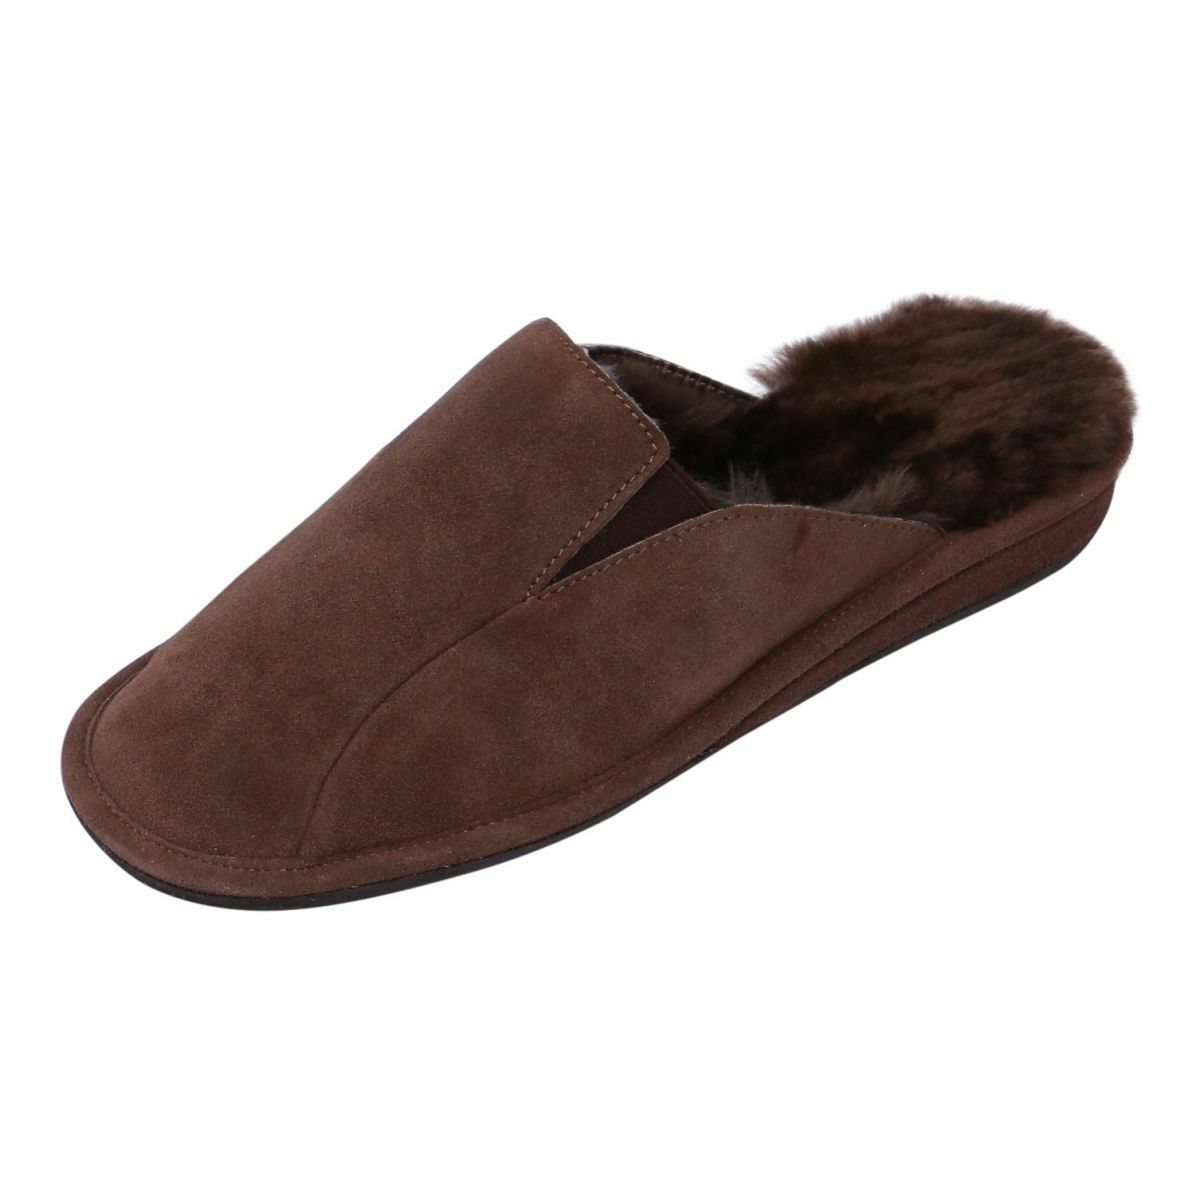 Lamb Wool House shoes - Viktor Men's Slippers fur shoes Leather shoes